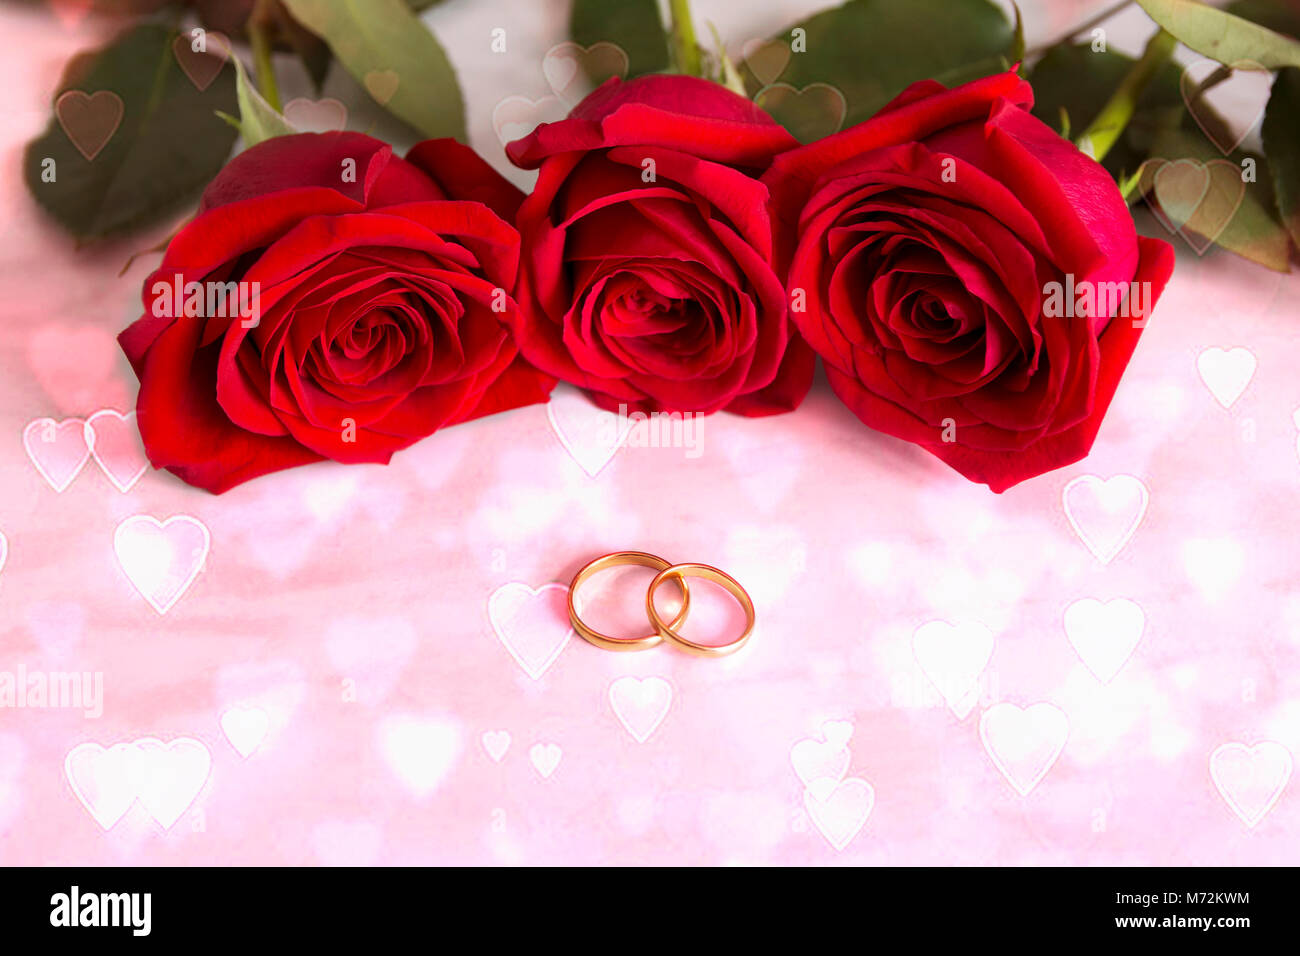 Relationships Jewellery Stock Photos & Relationships Jewellery Stock ...